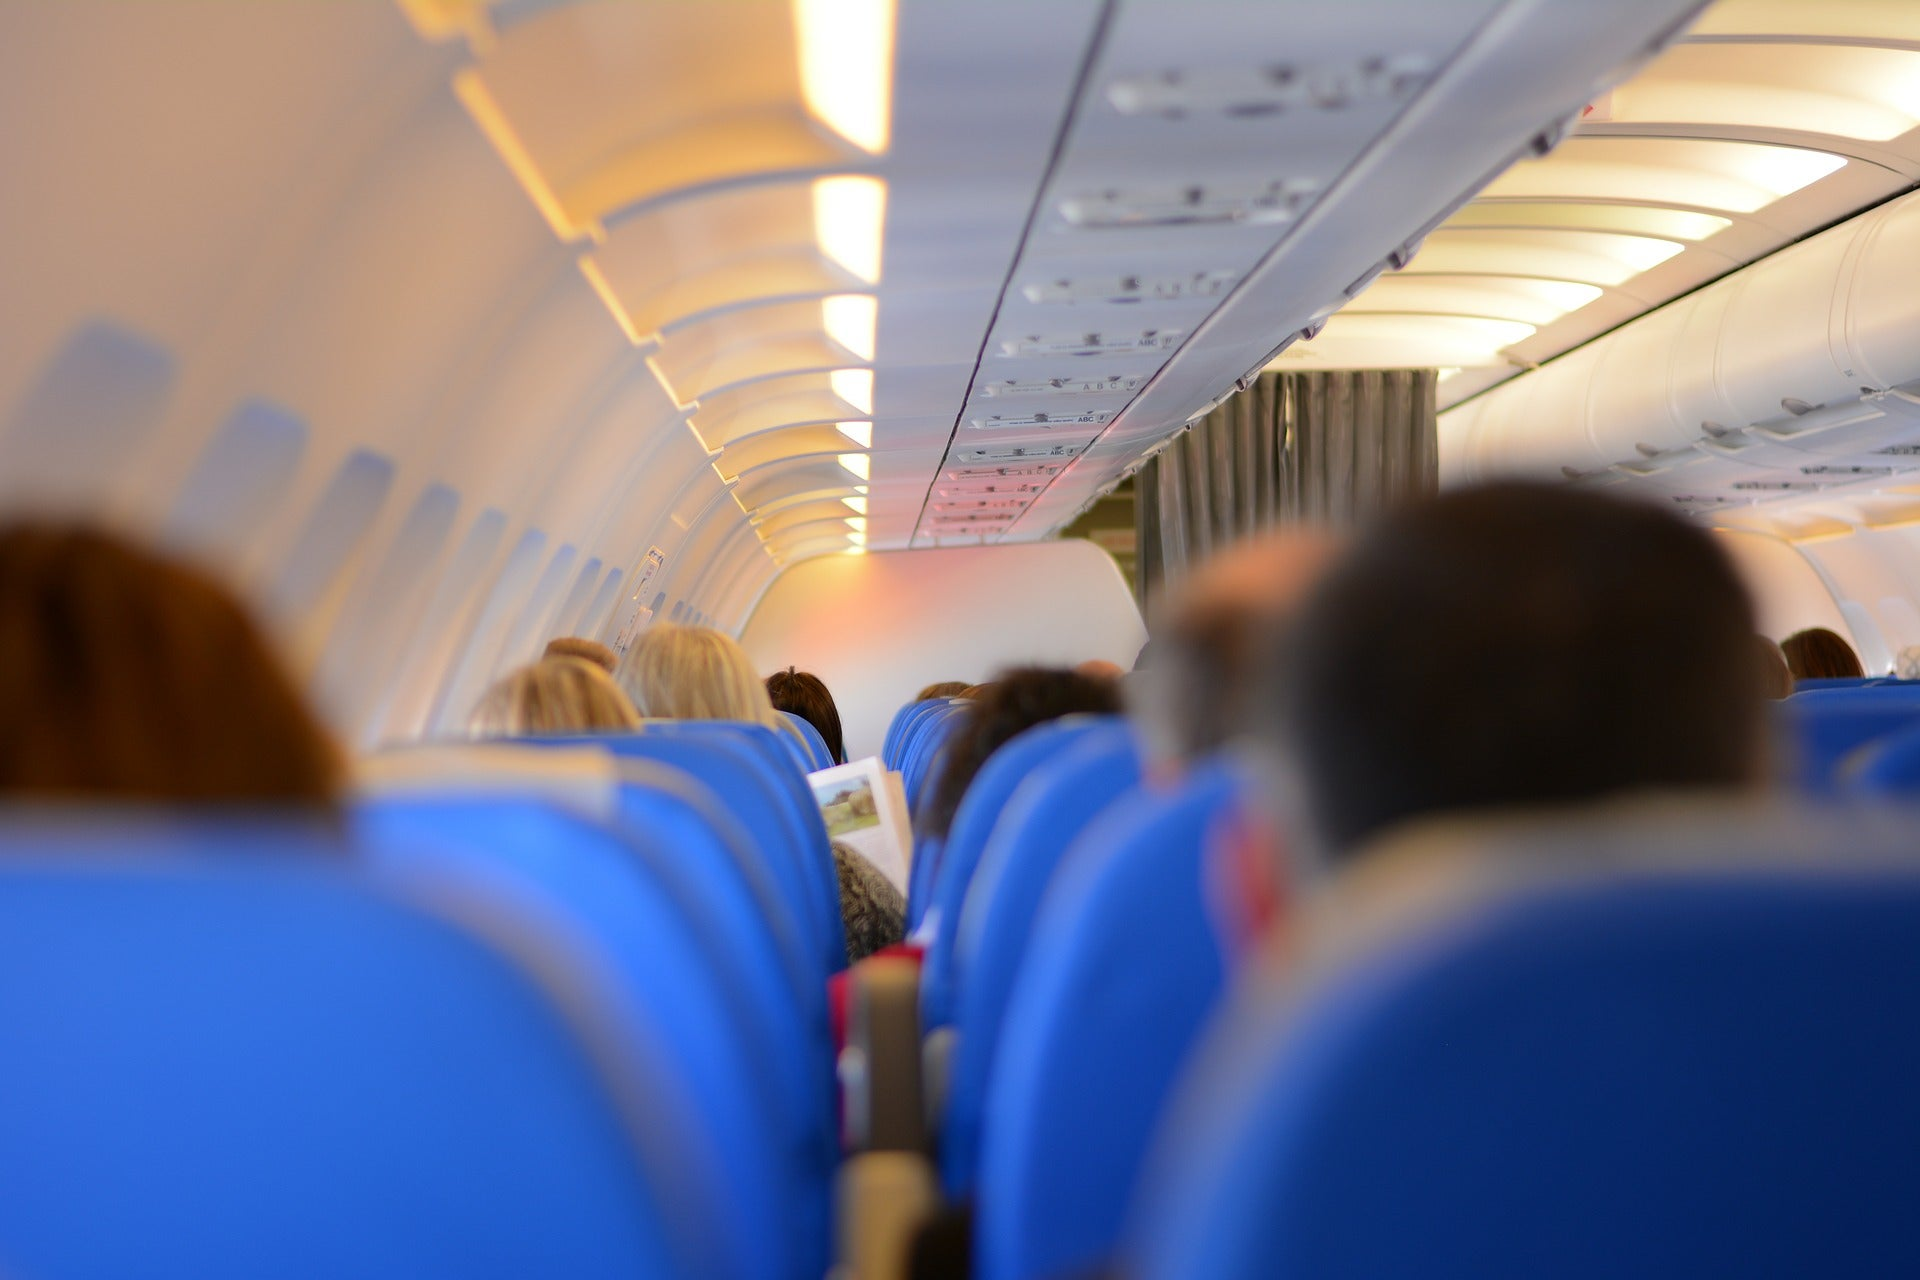 Planes might not be disgusting germ factories after all